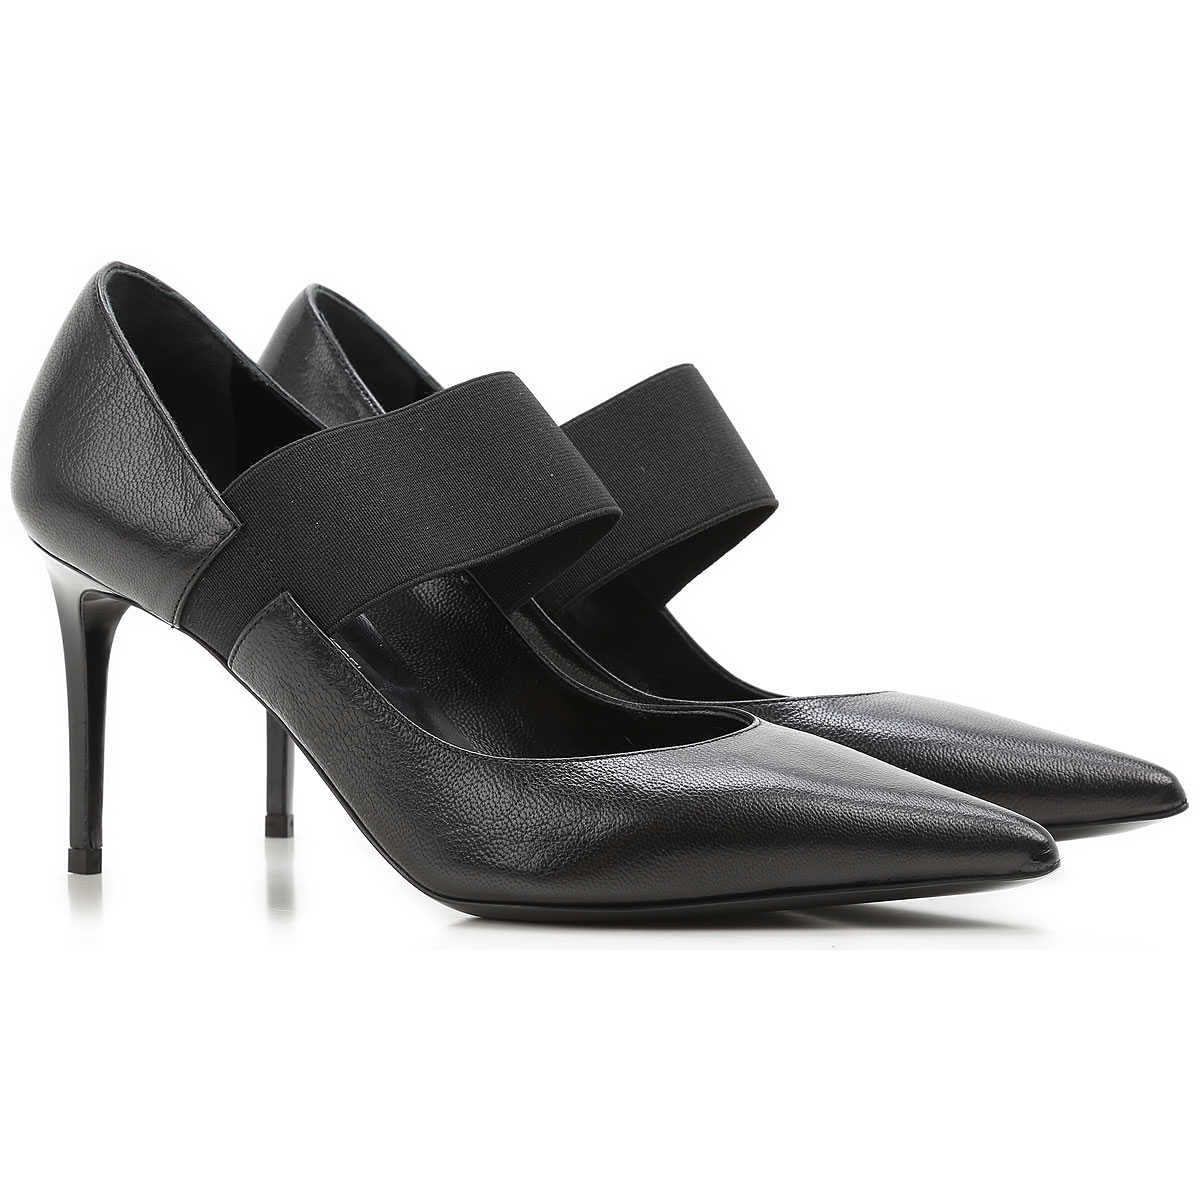 Philippe Model Pumps & High Heels for Women in Outlet Black Canada - GOOFASH - Womens PUMPS